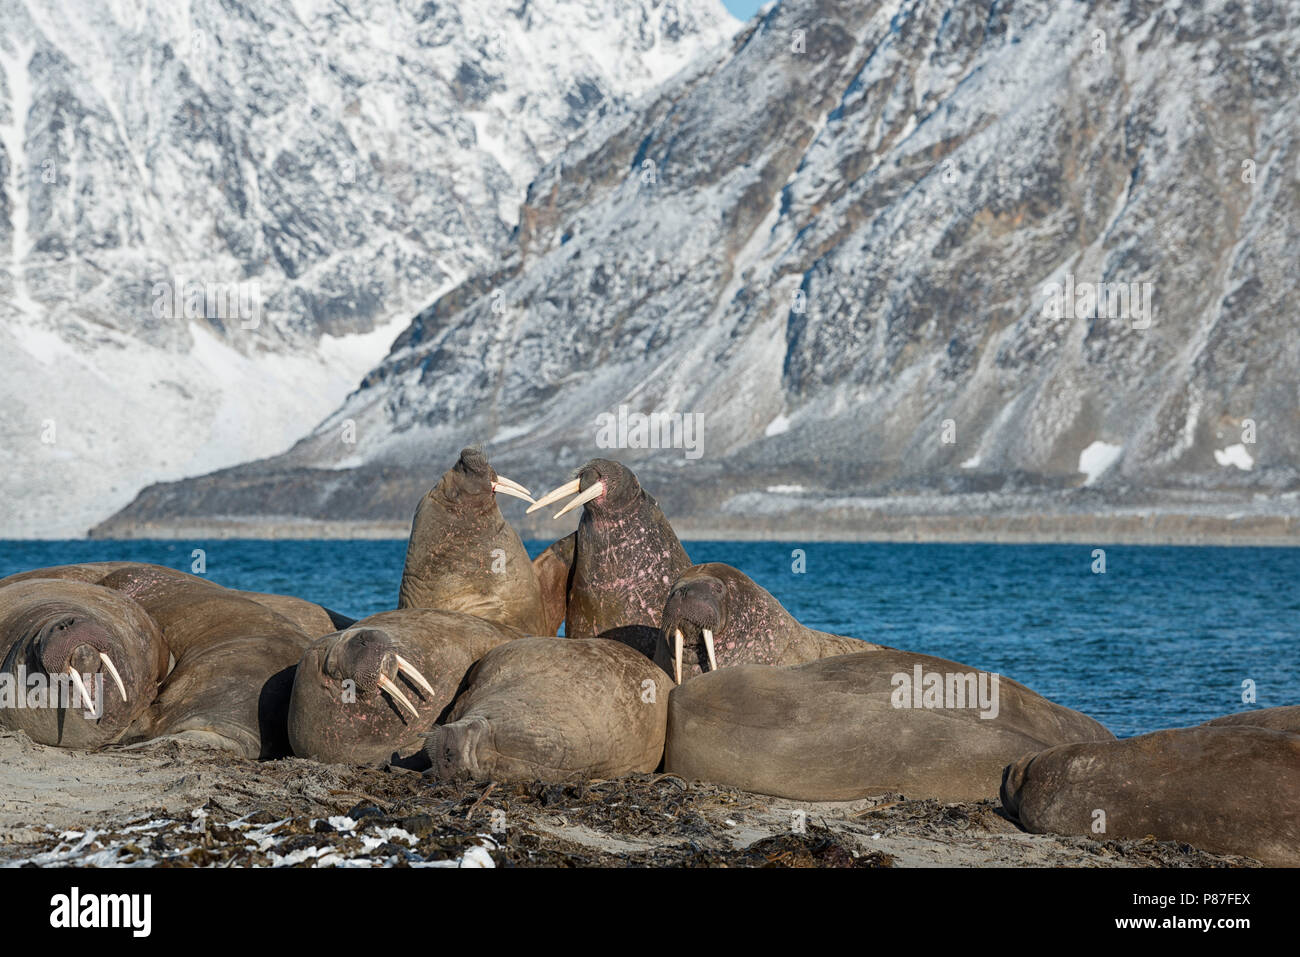 Group of walruses in Smeerenburgfjord, Nordvest-Spitsbergen National Park, 2017 - Stock Image